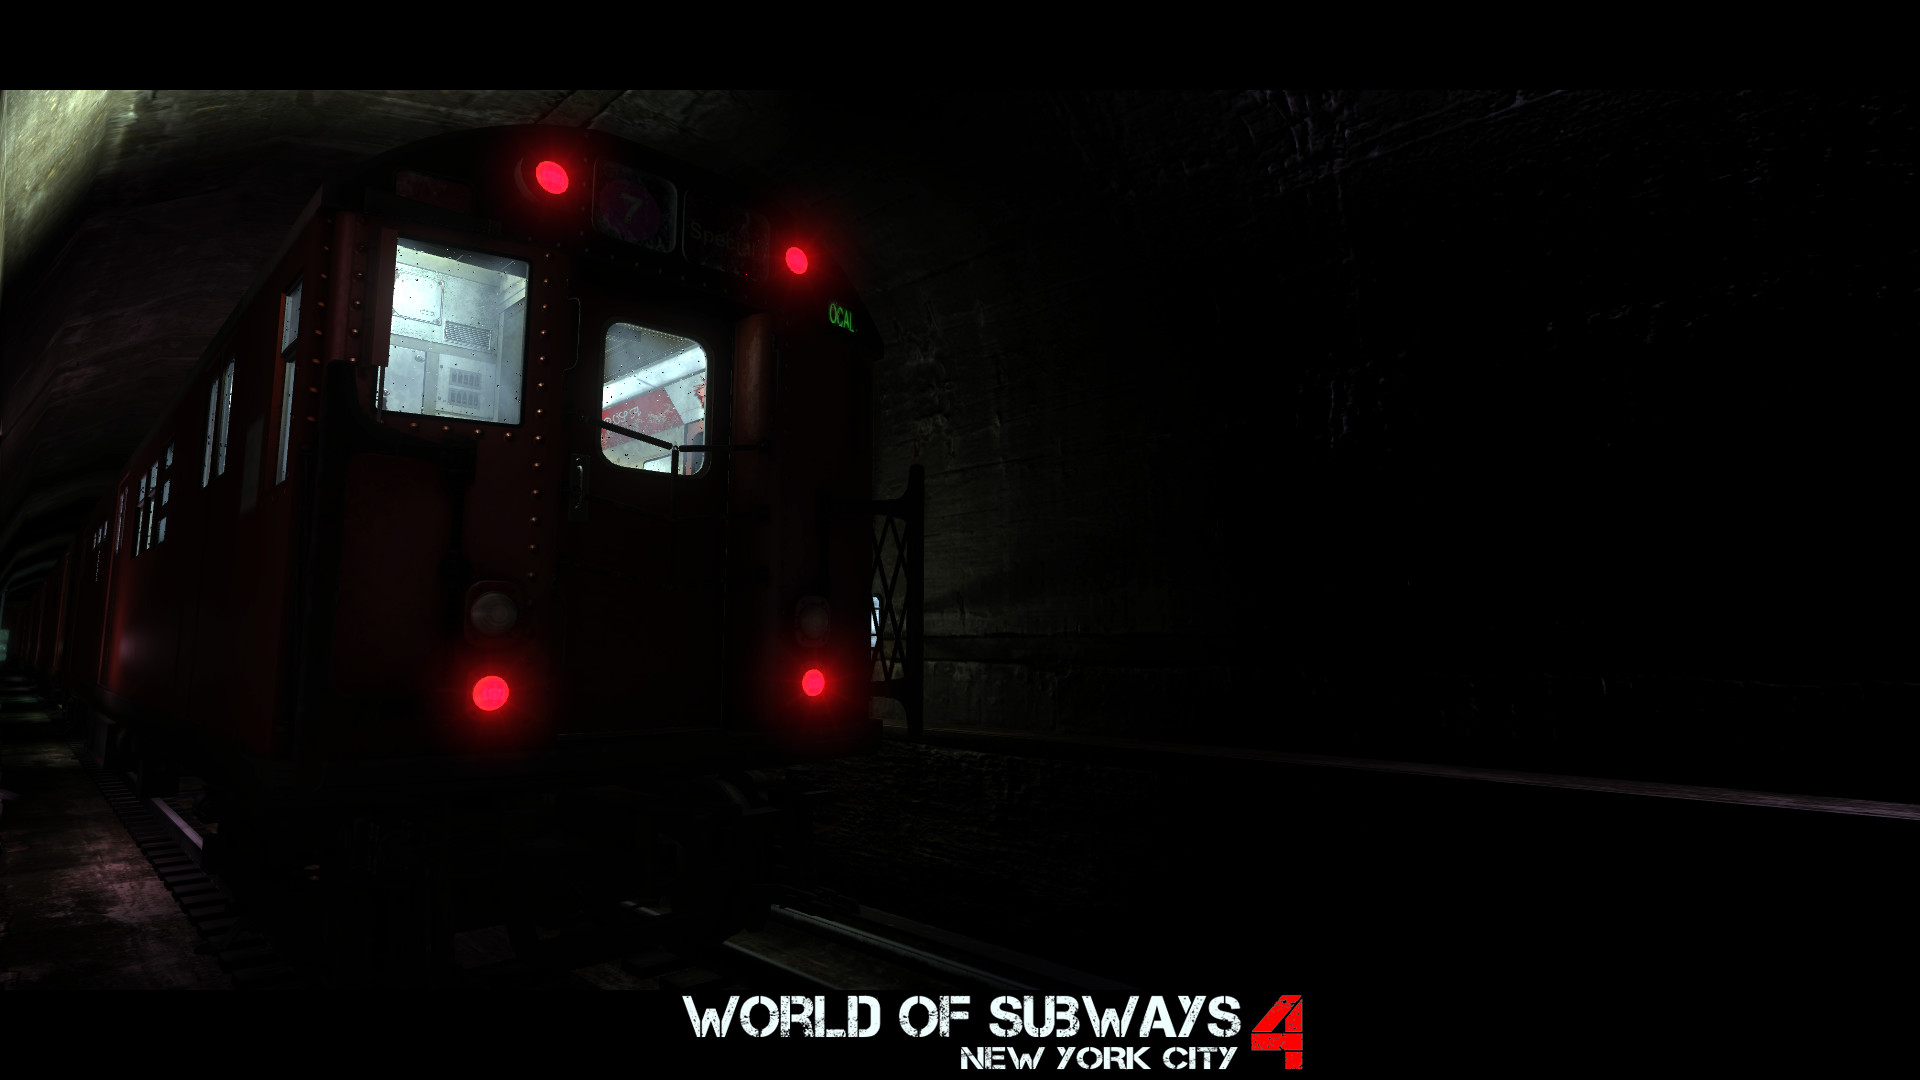 World of Subways 4 – New York Line 7 screenshot4 on PCGamesCDN you can download cracked unlocked full pc version game direct free download with mirrors and torrent.